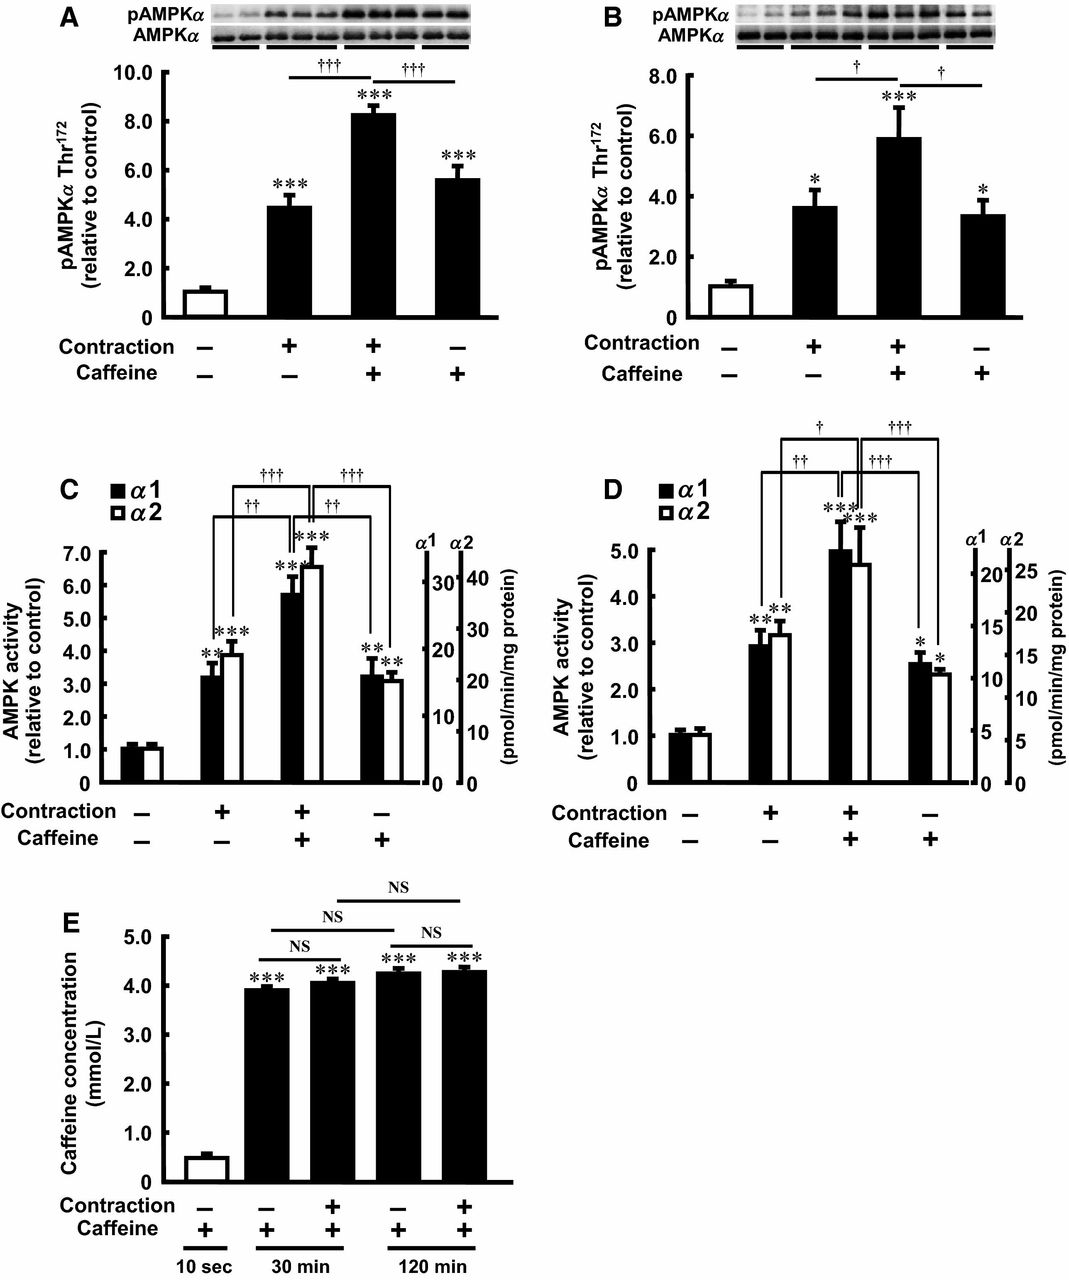 Figure 1. Effect of caffeine on contraction‐stimulated AMPKα Thr<sup>172</sup> phosphorylation and AMPK activity in incubated rat skeletal muscle. Isolated epitrochlearis muscle was preincubated and incubated for 30 min (A and C) or 120 min (B and D) in the absence (−) or presence (+) of 3 mmol/L caffeine. The muscle was tetanically contracted during the last 10 min of the incubation period and then subjected to western blot analysis (A and B) or an isoform‐specific AMPK activity assay (C and D). Intracellular caffeine concentration was measured after incubation in the presence of 3 mmol/L caffeine for up to 120 min with or without electrical stimulation (E). Values are mean ± SE; n = 5–10 per group. *P < 0.05, **P < 0.01, ***P < 0.001 versus control; <sup>†</sup>P < 0.05, <sup>††</sup>P < 0.01, <sup>†††</sup>P < 0.001 versus contraction plus caffeine. AMPKα, 5′‐Adenosine monophosphate‐activated protein kinase α; NS, not significant.